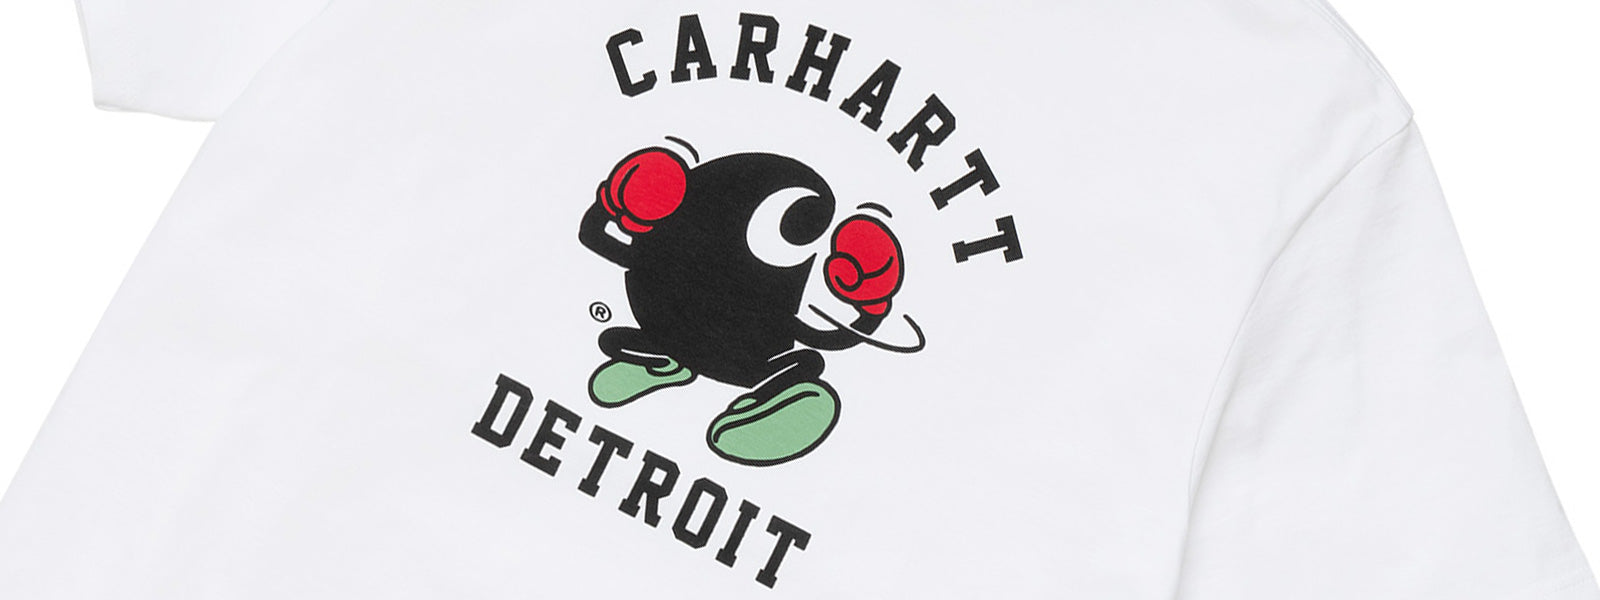 Shop Carhartt Now